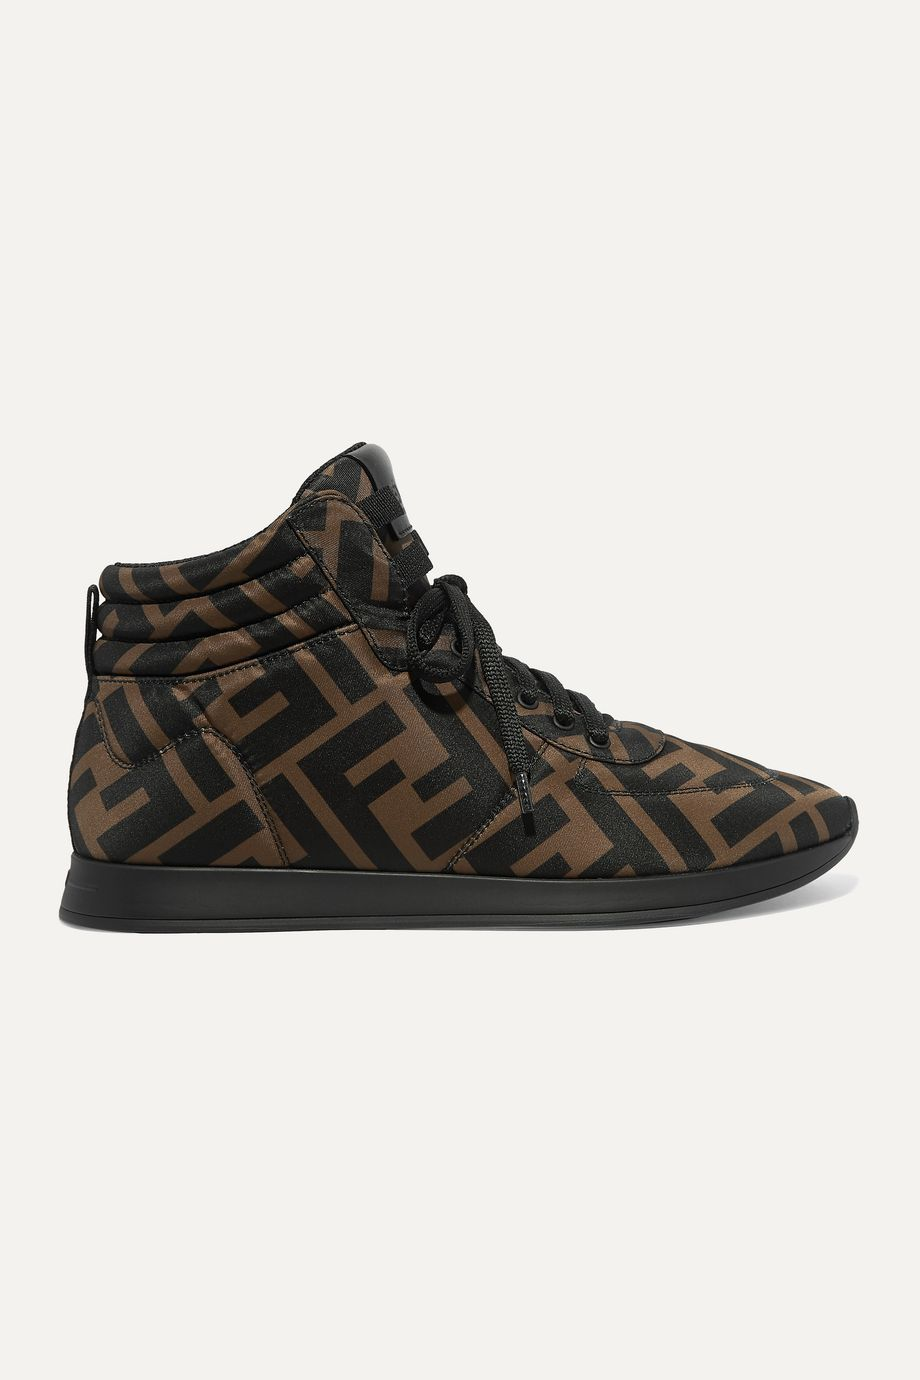 Fendi Leather-trimmed logo-print neoprene high-top sneakers